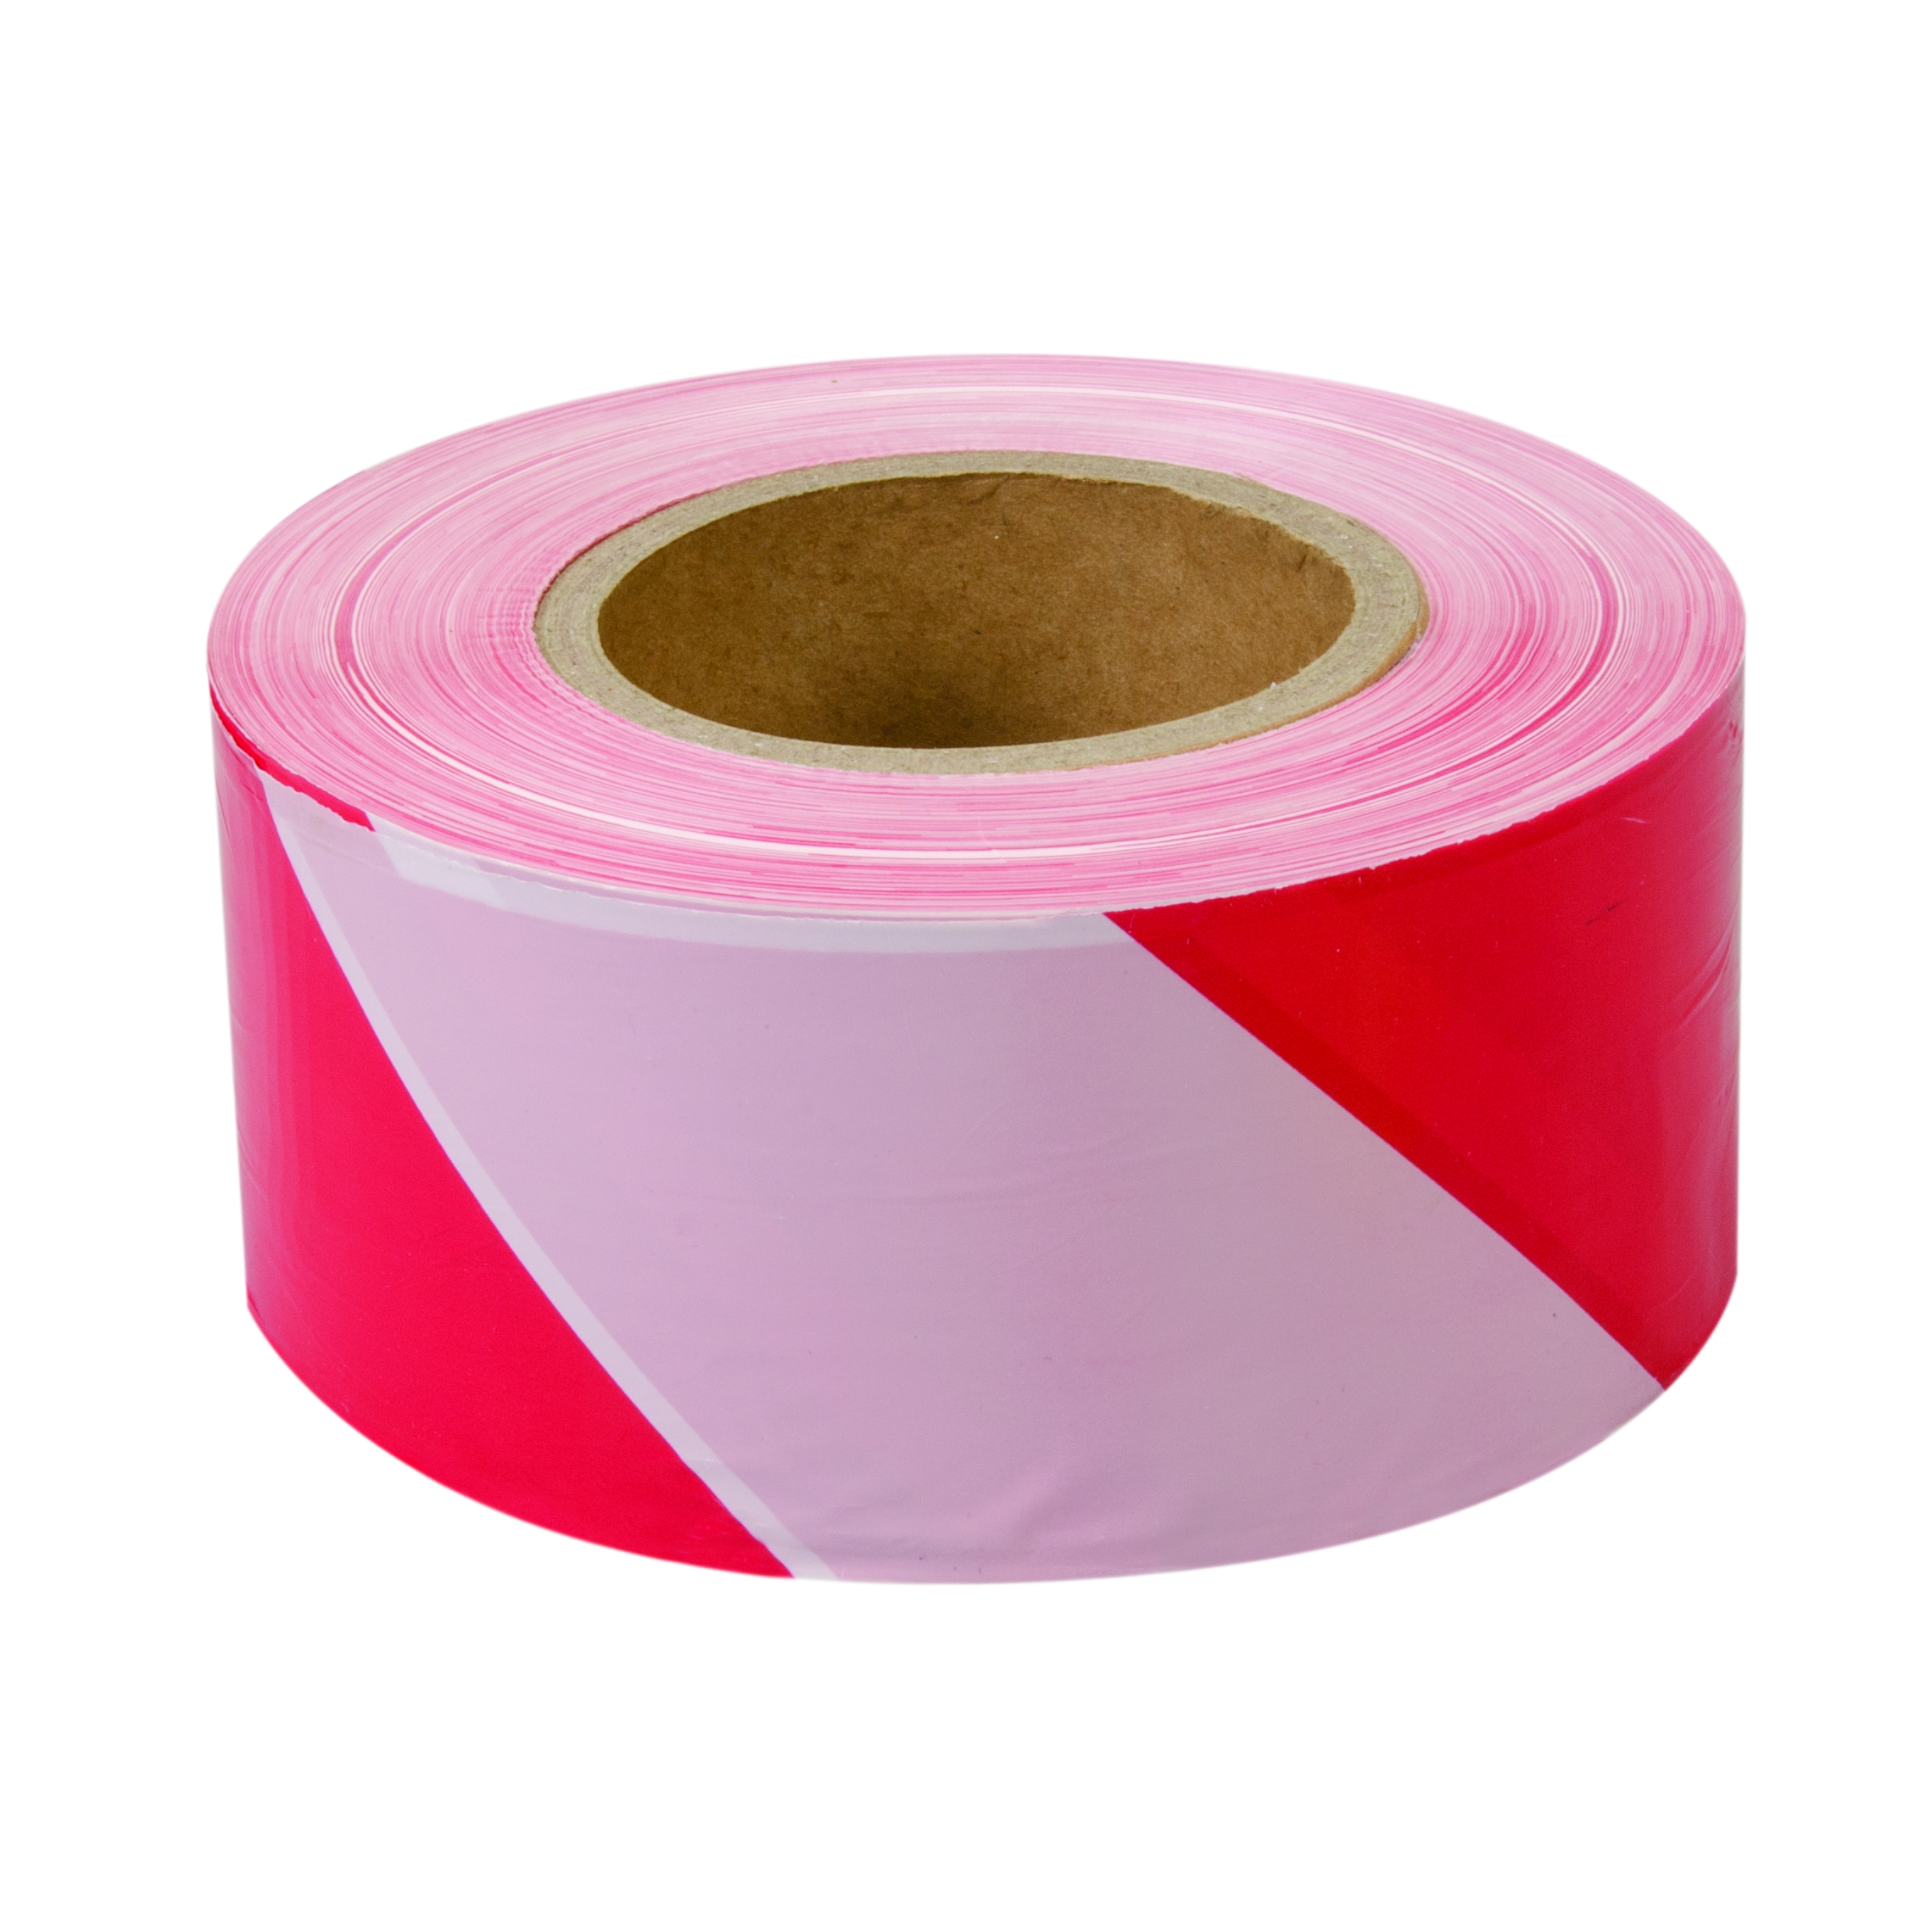 Afzetlint 70mm x 500m Rood/Wit